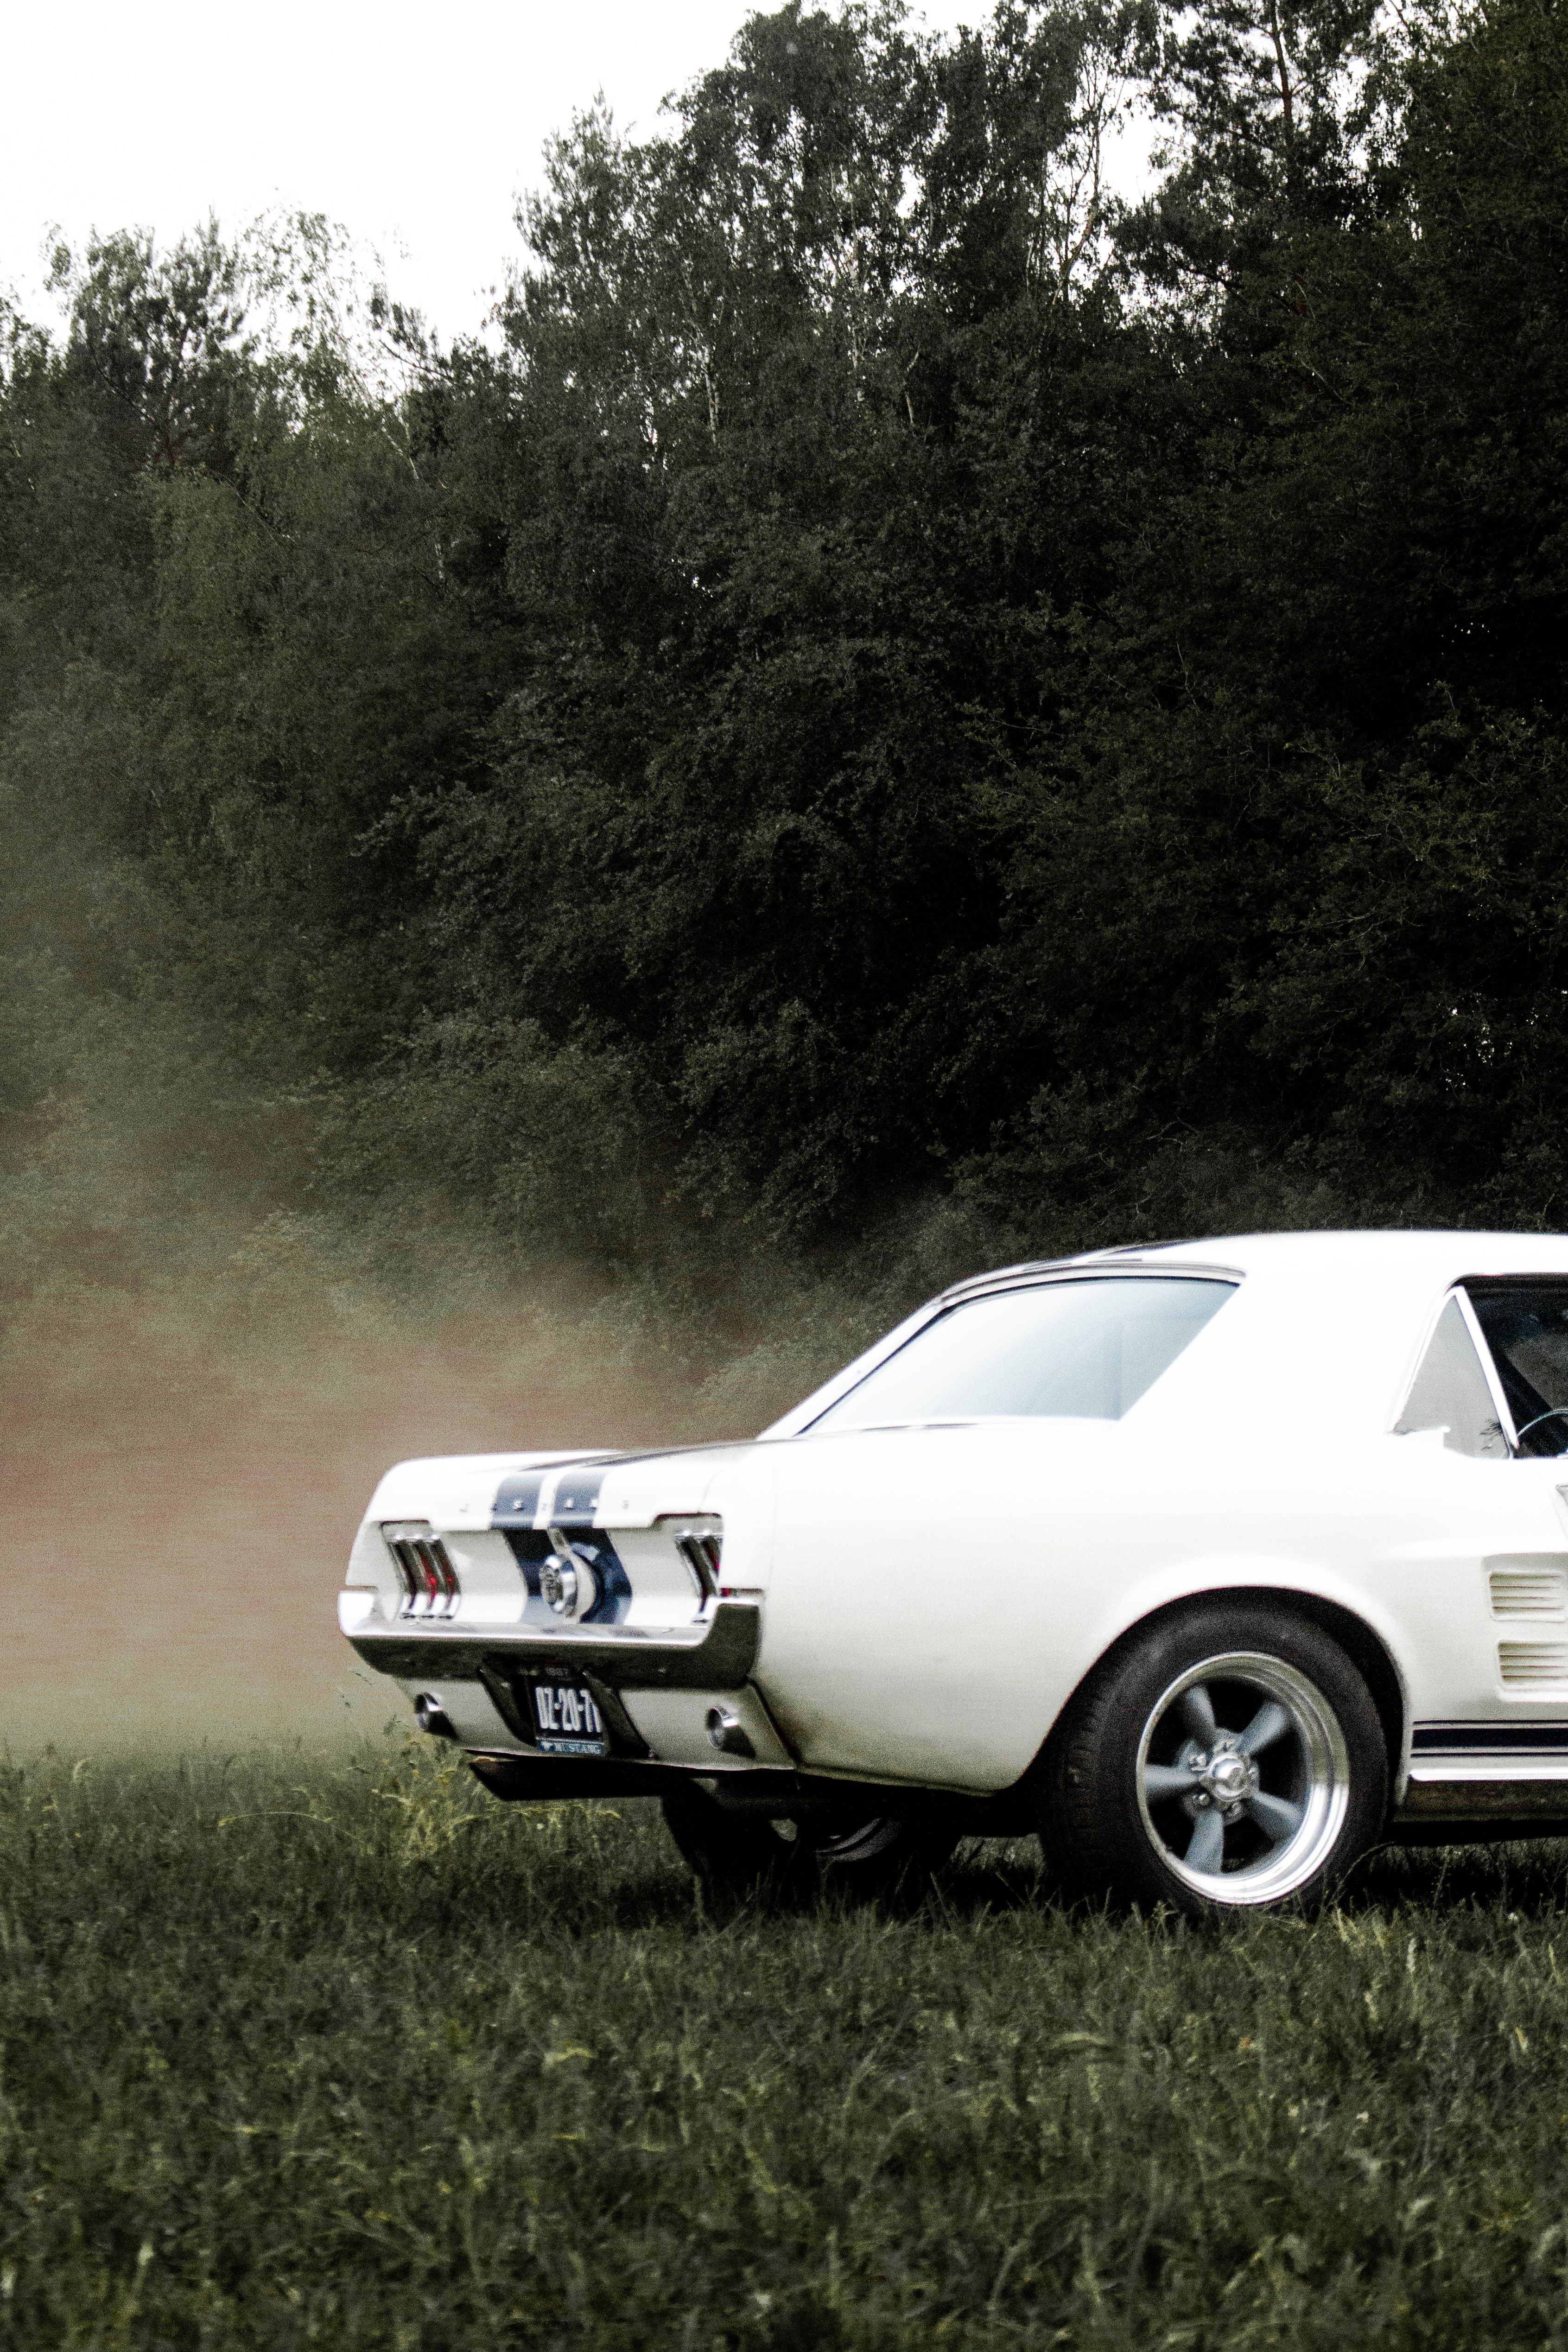 Restore Or Modify Your Classic Ford Mustang With The Right Parts From National Parts Depot From Correct Emblems A Classic Mustang Car Iphone Wallpaper Mustang